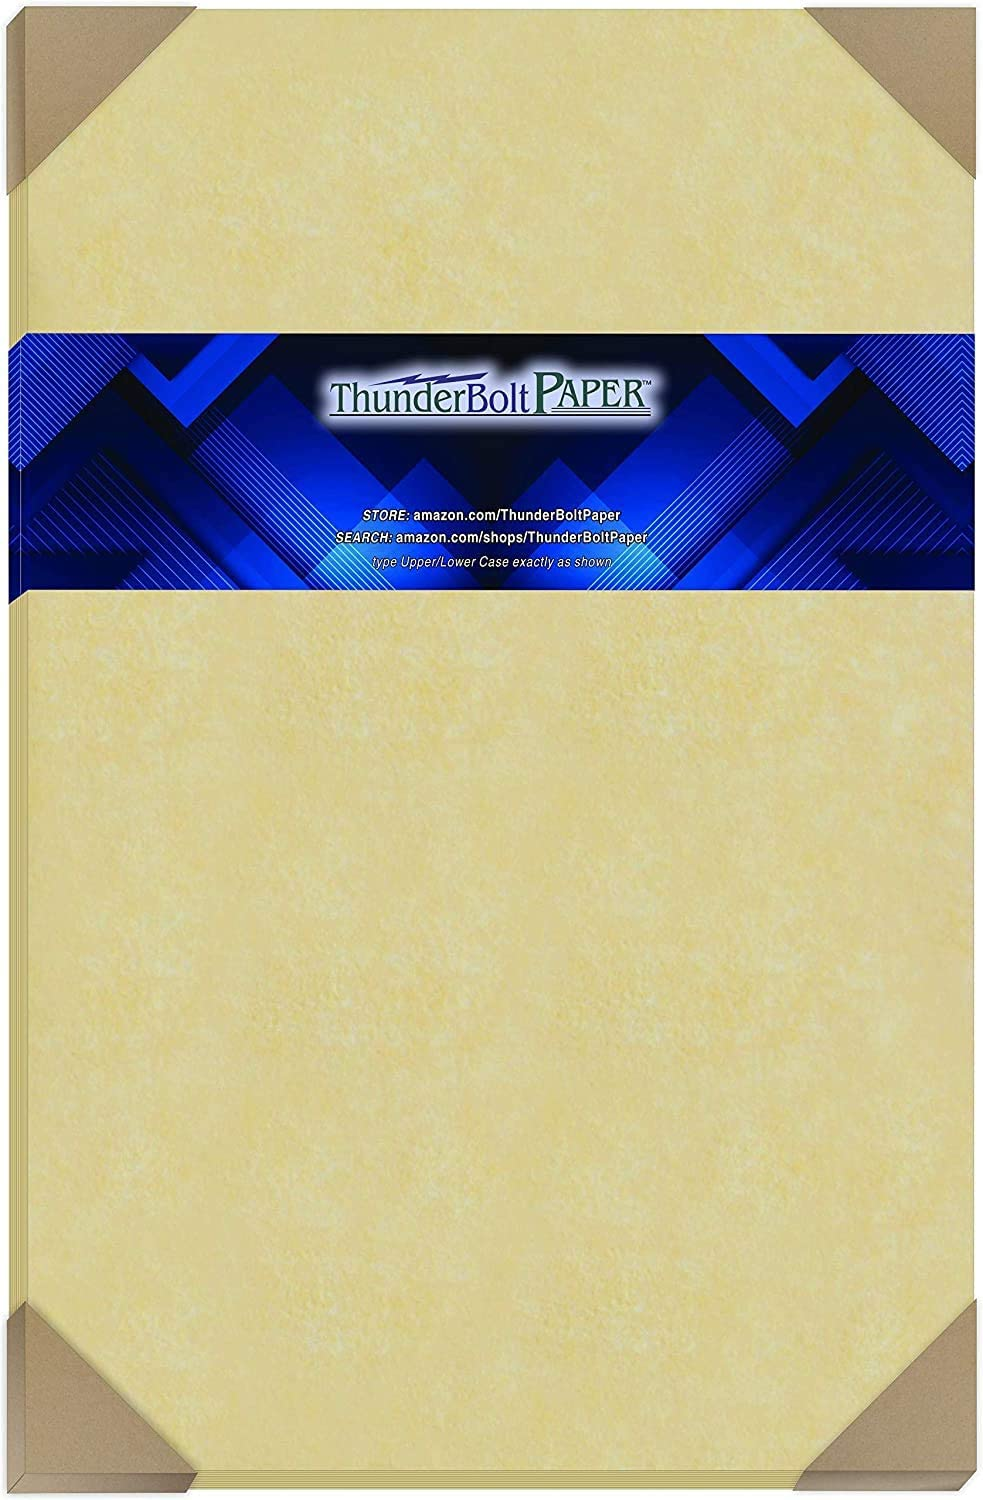 50 Gold Parchment 60lb Text Weight 11 X 17 inches Stationery Paper Colored Sheets Tabloid Ledger Size -Printable Old Parchment Semblance